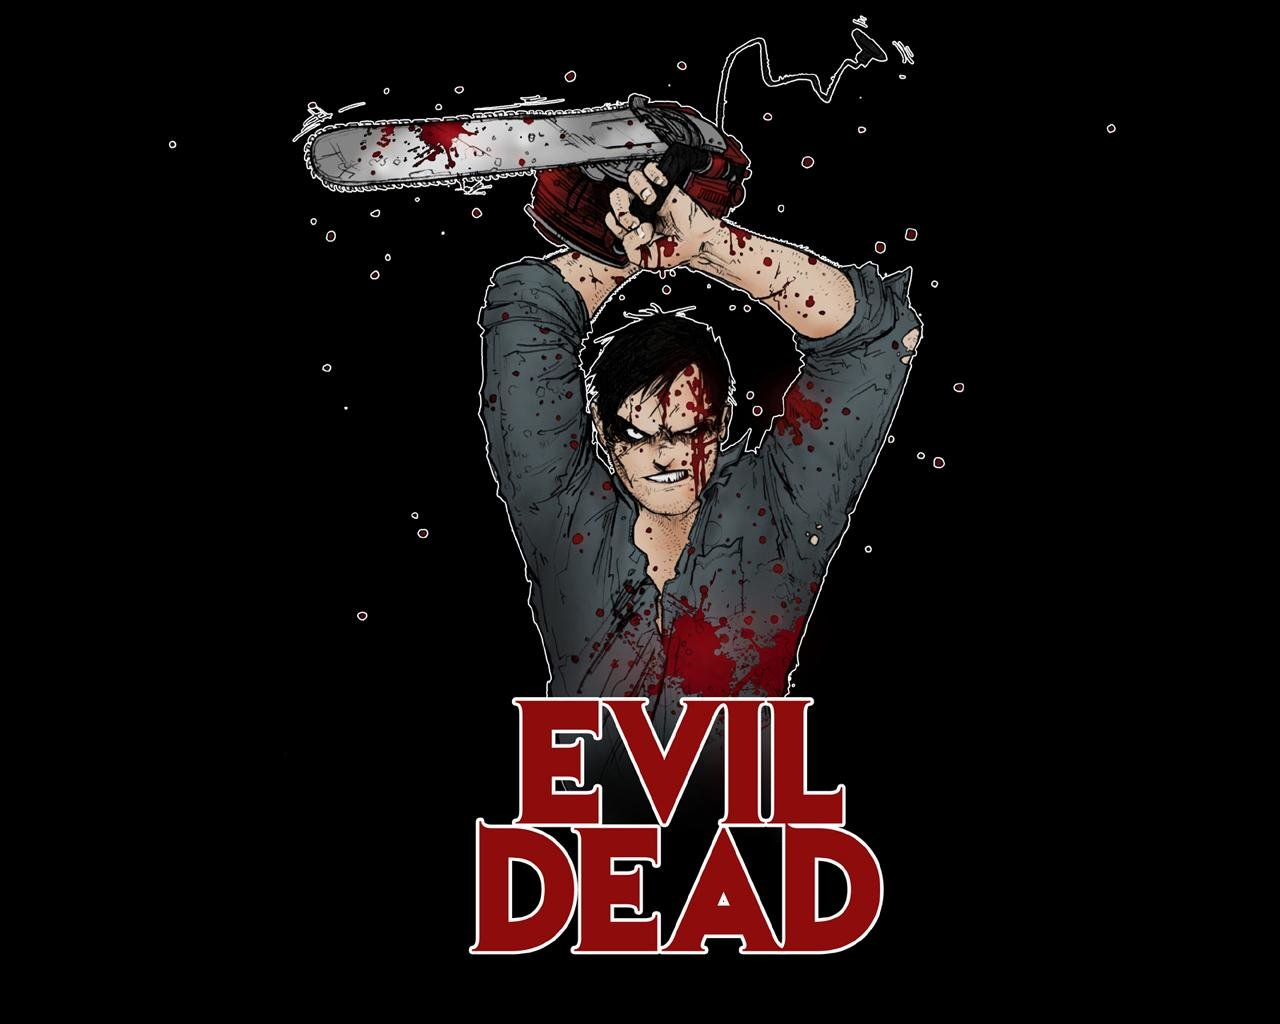 Free Download The Evil Dead Background ID72726 Hd 1280x1024 For Computer